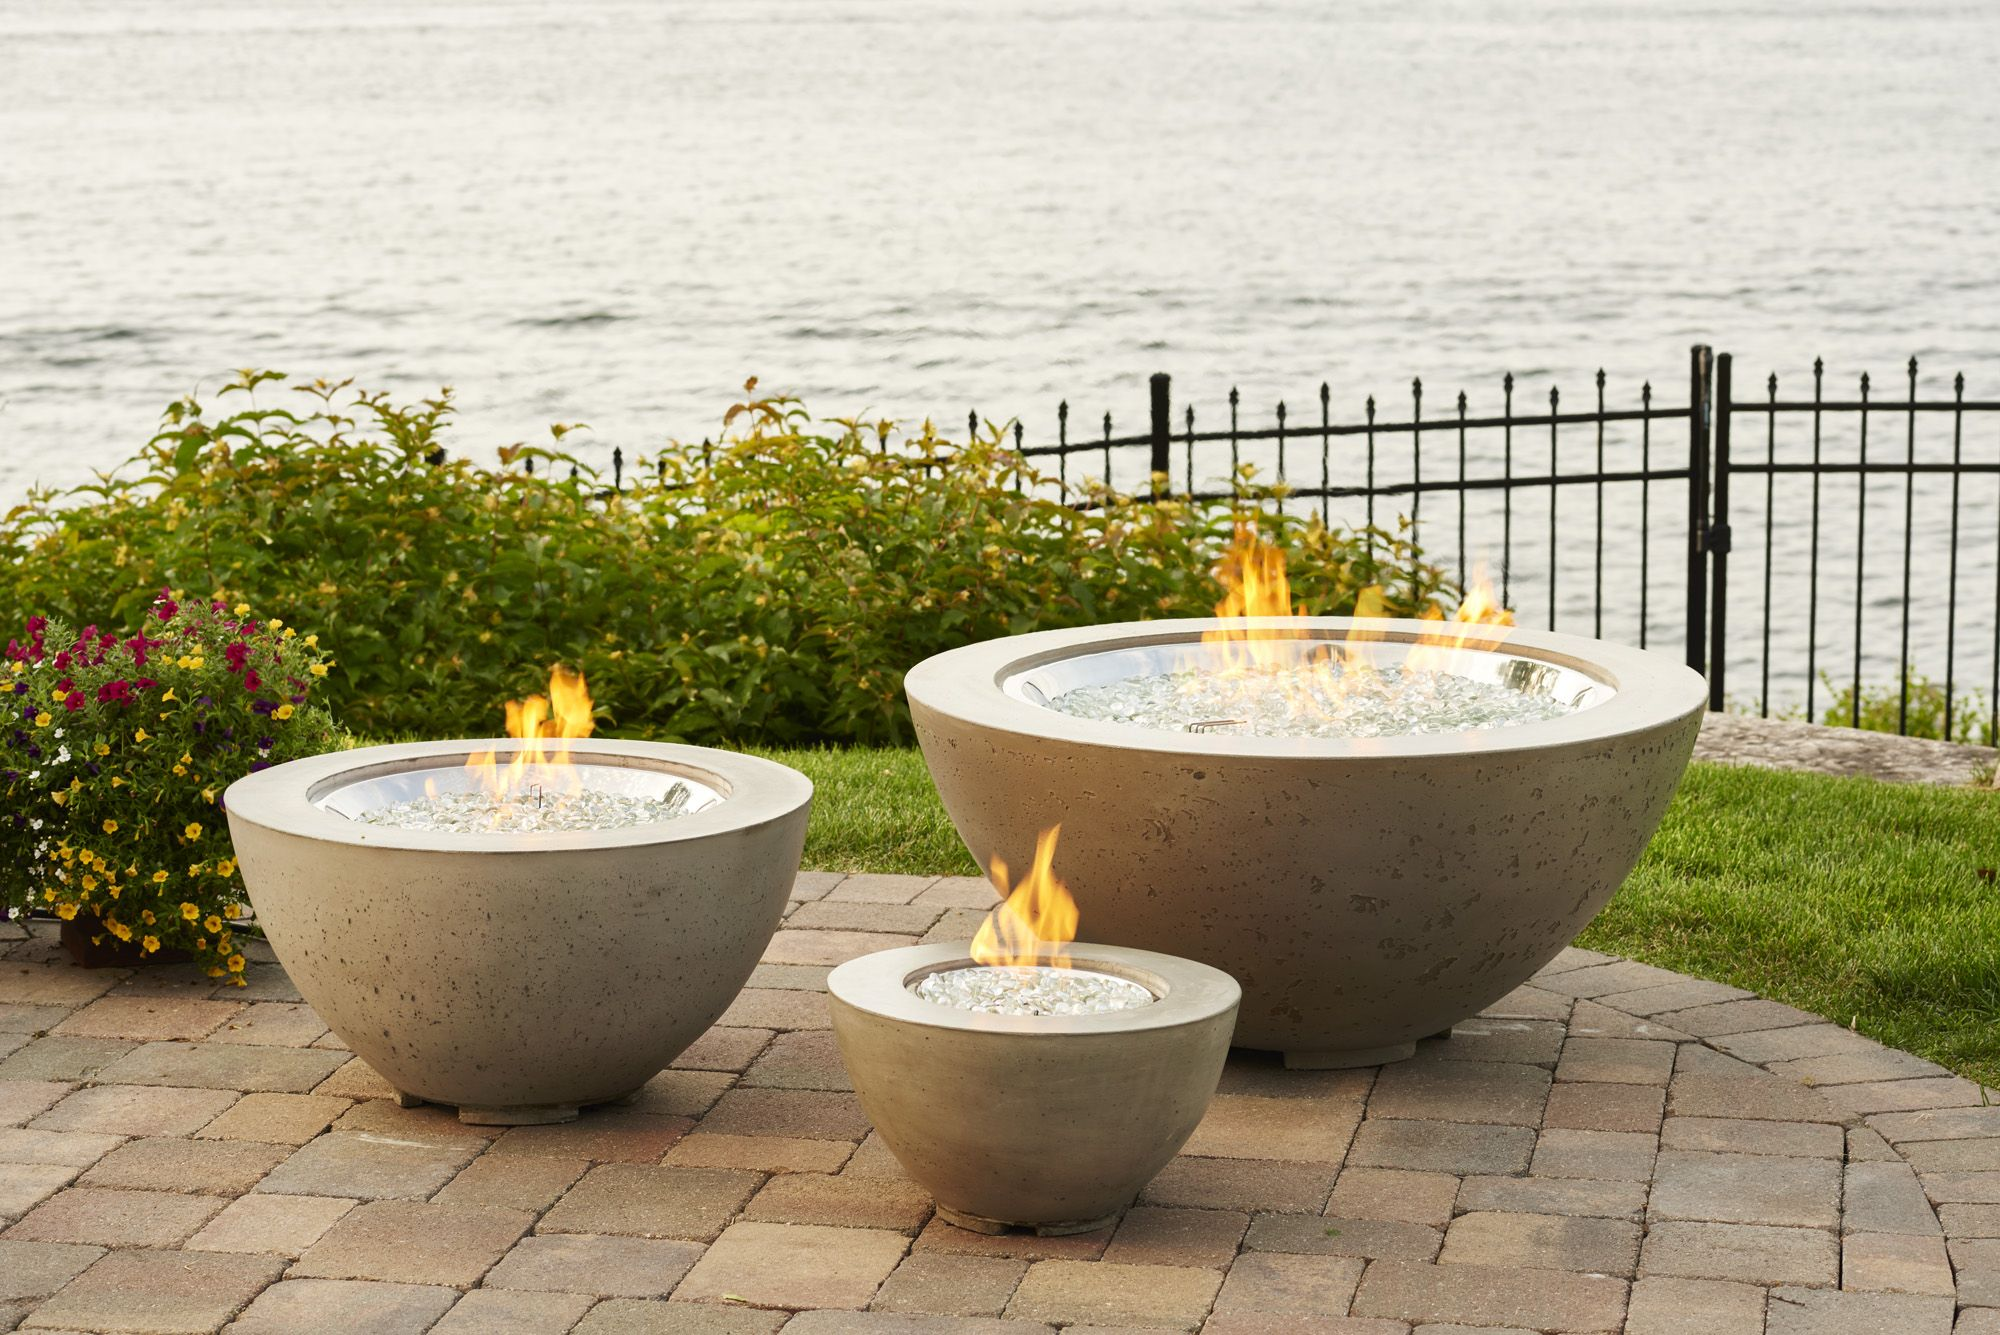 0db8958e862817229099d4c0e10a3873 Top Result 50 Lovely Outdoor Gas Fire Bowl